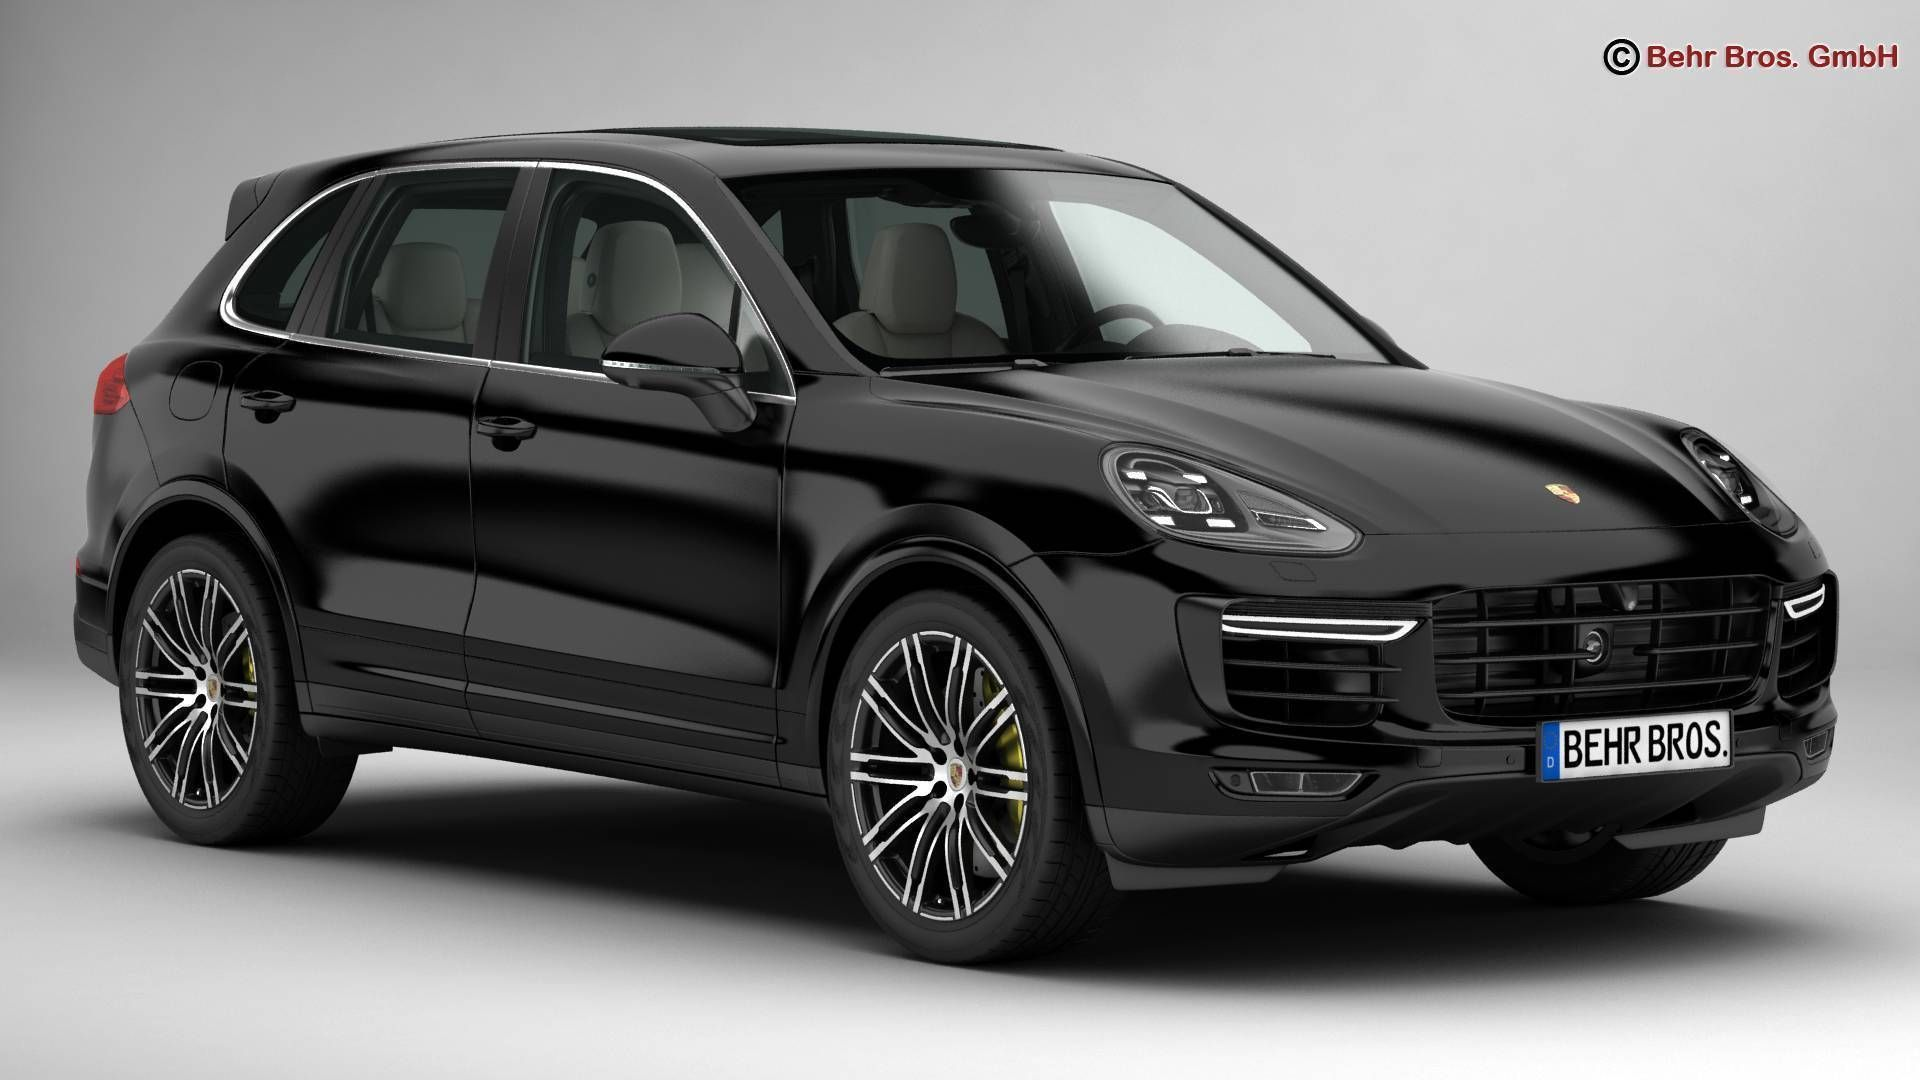 12 A Porsche Cayenne Model Spy Shoot